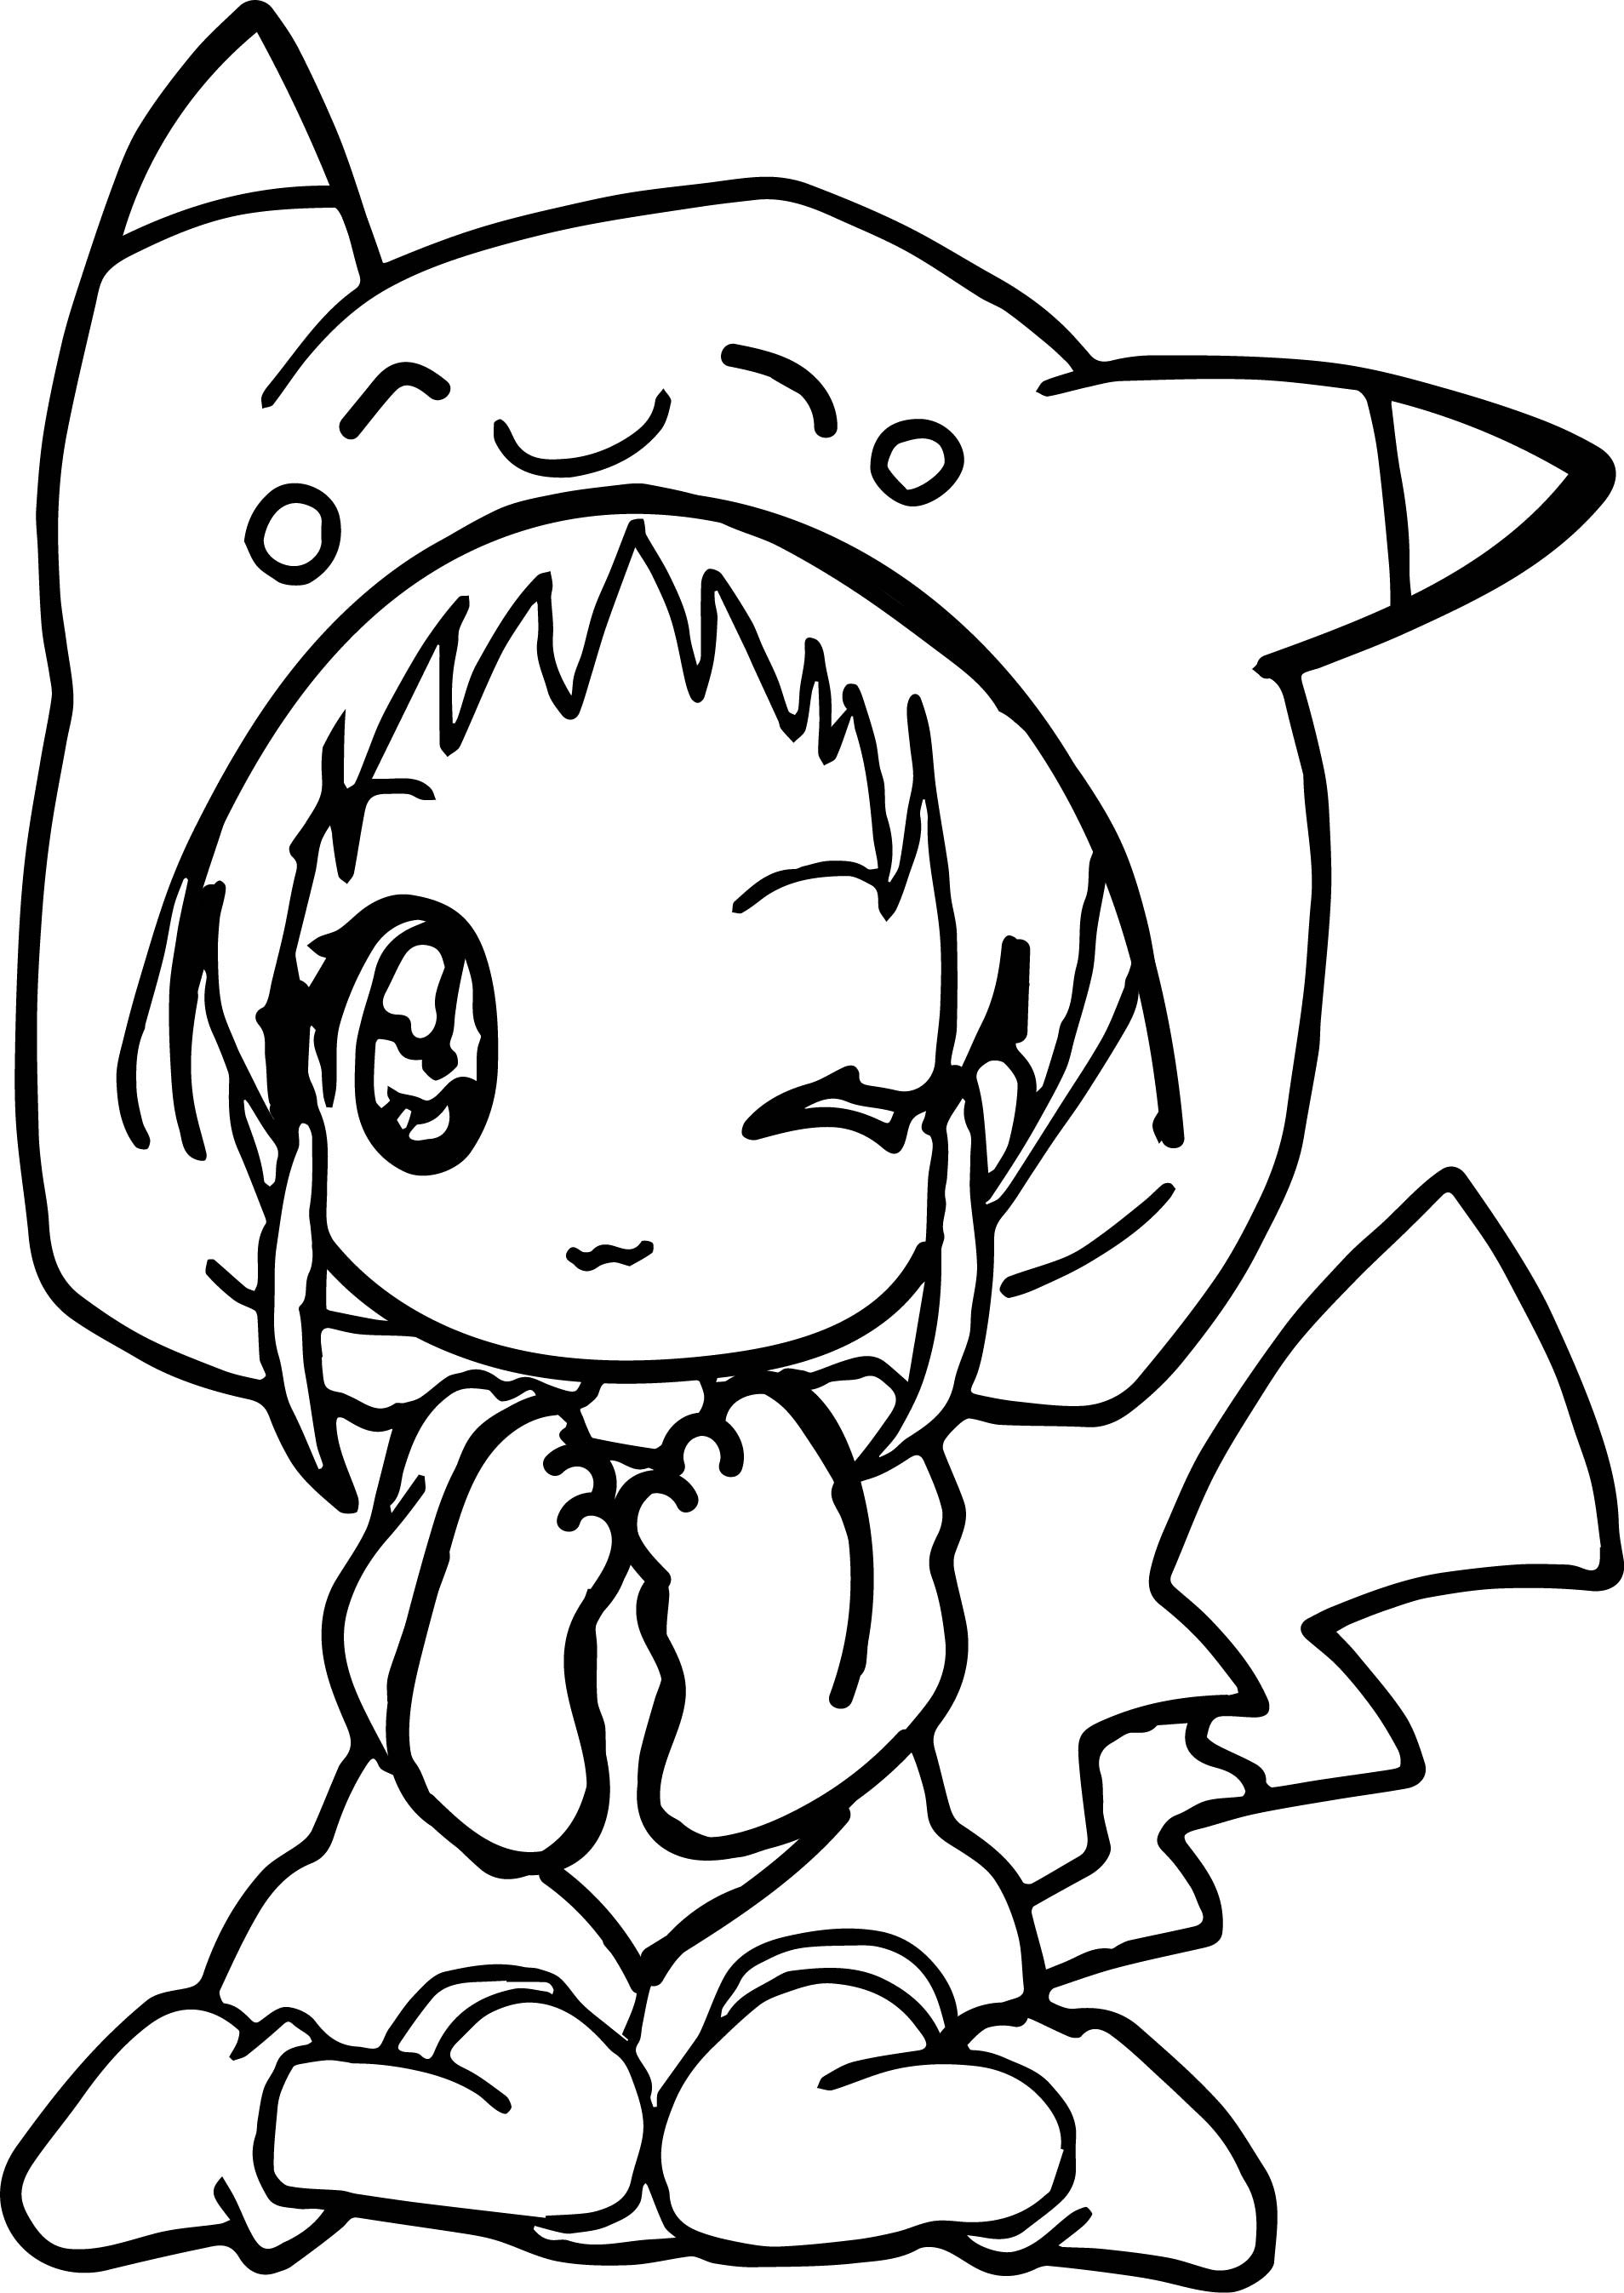 free anime coloring anime coloring pages best coloring pages for kids coloring free anime